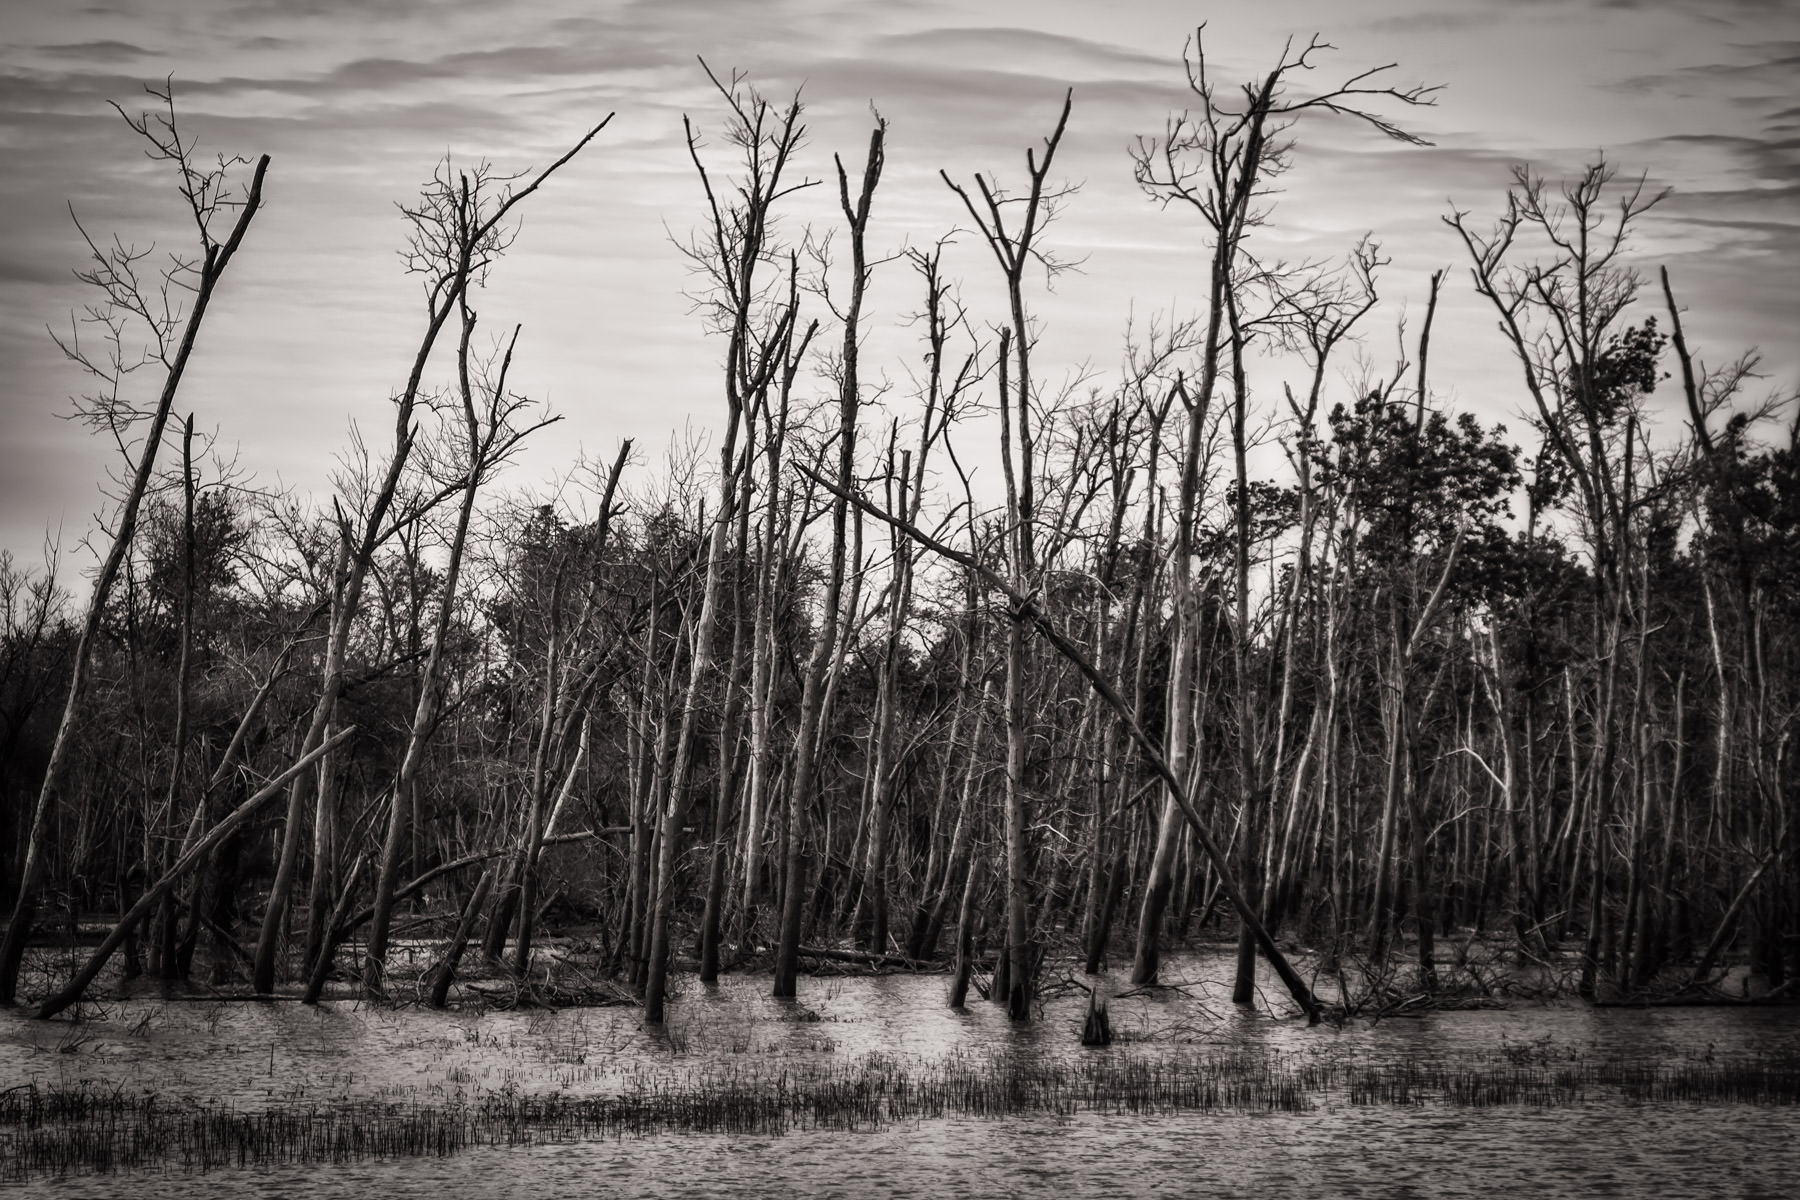 Trees stripped of their leaves rise from the marsh at Texas' Hagerman National Wildlife Refuge.